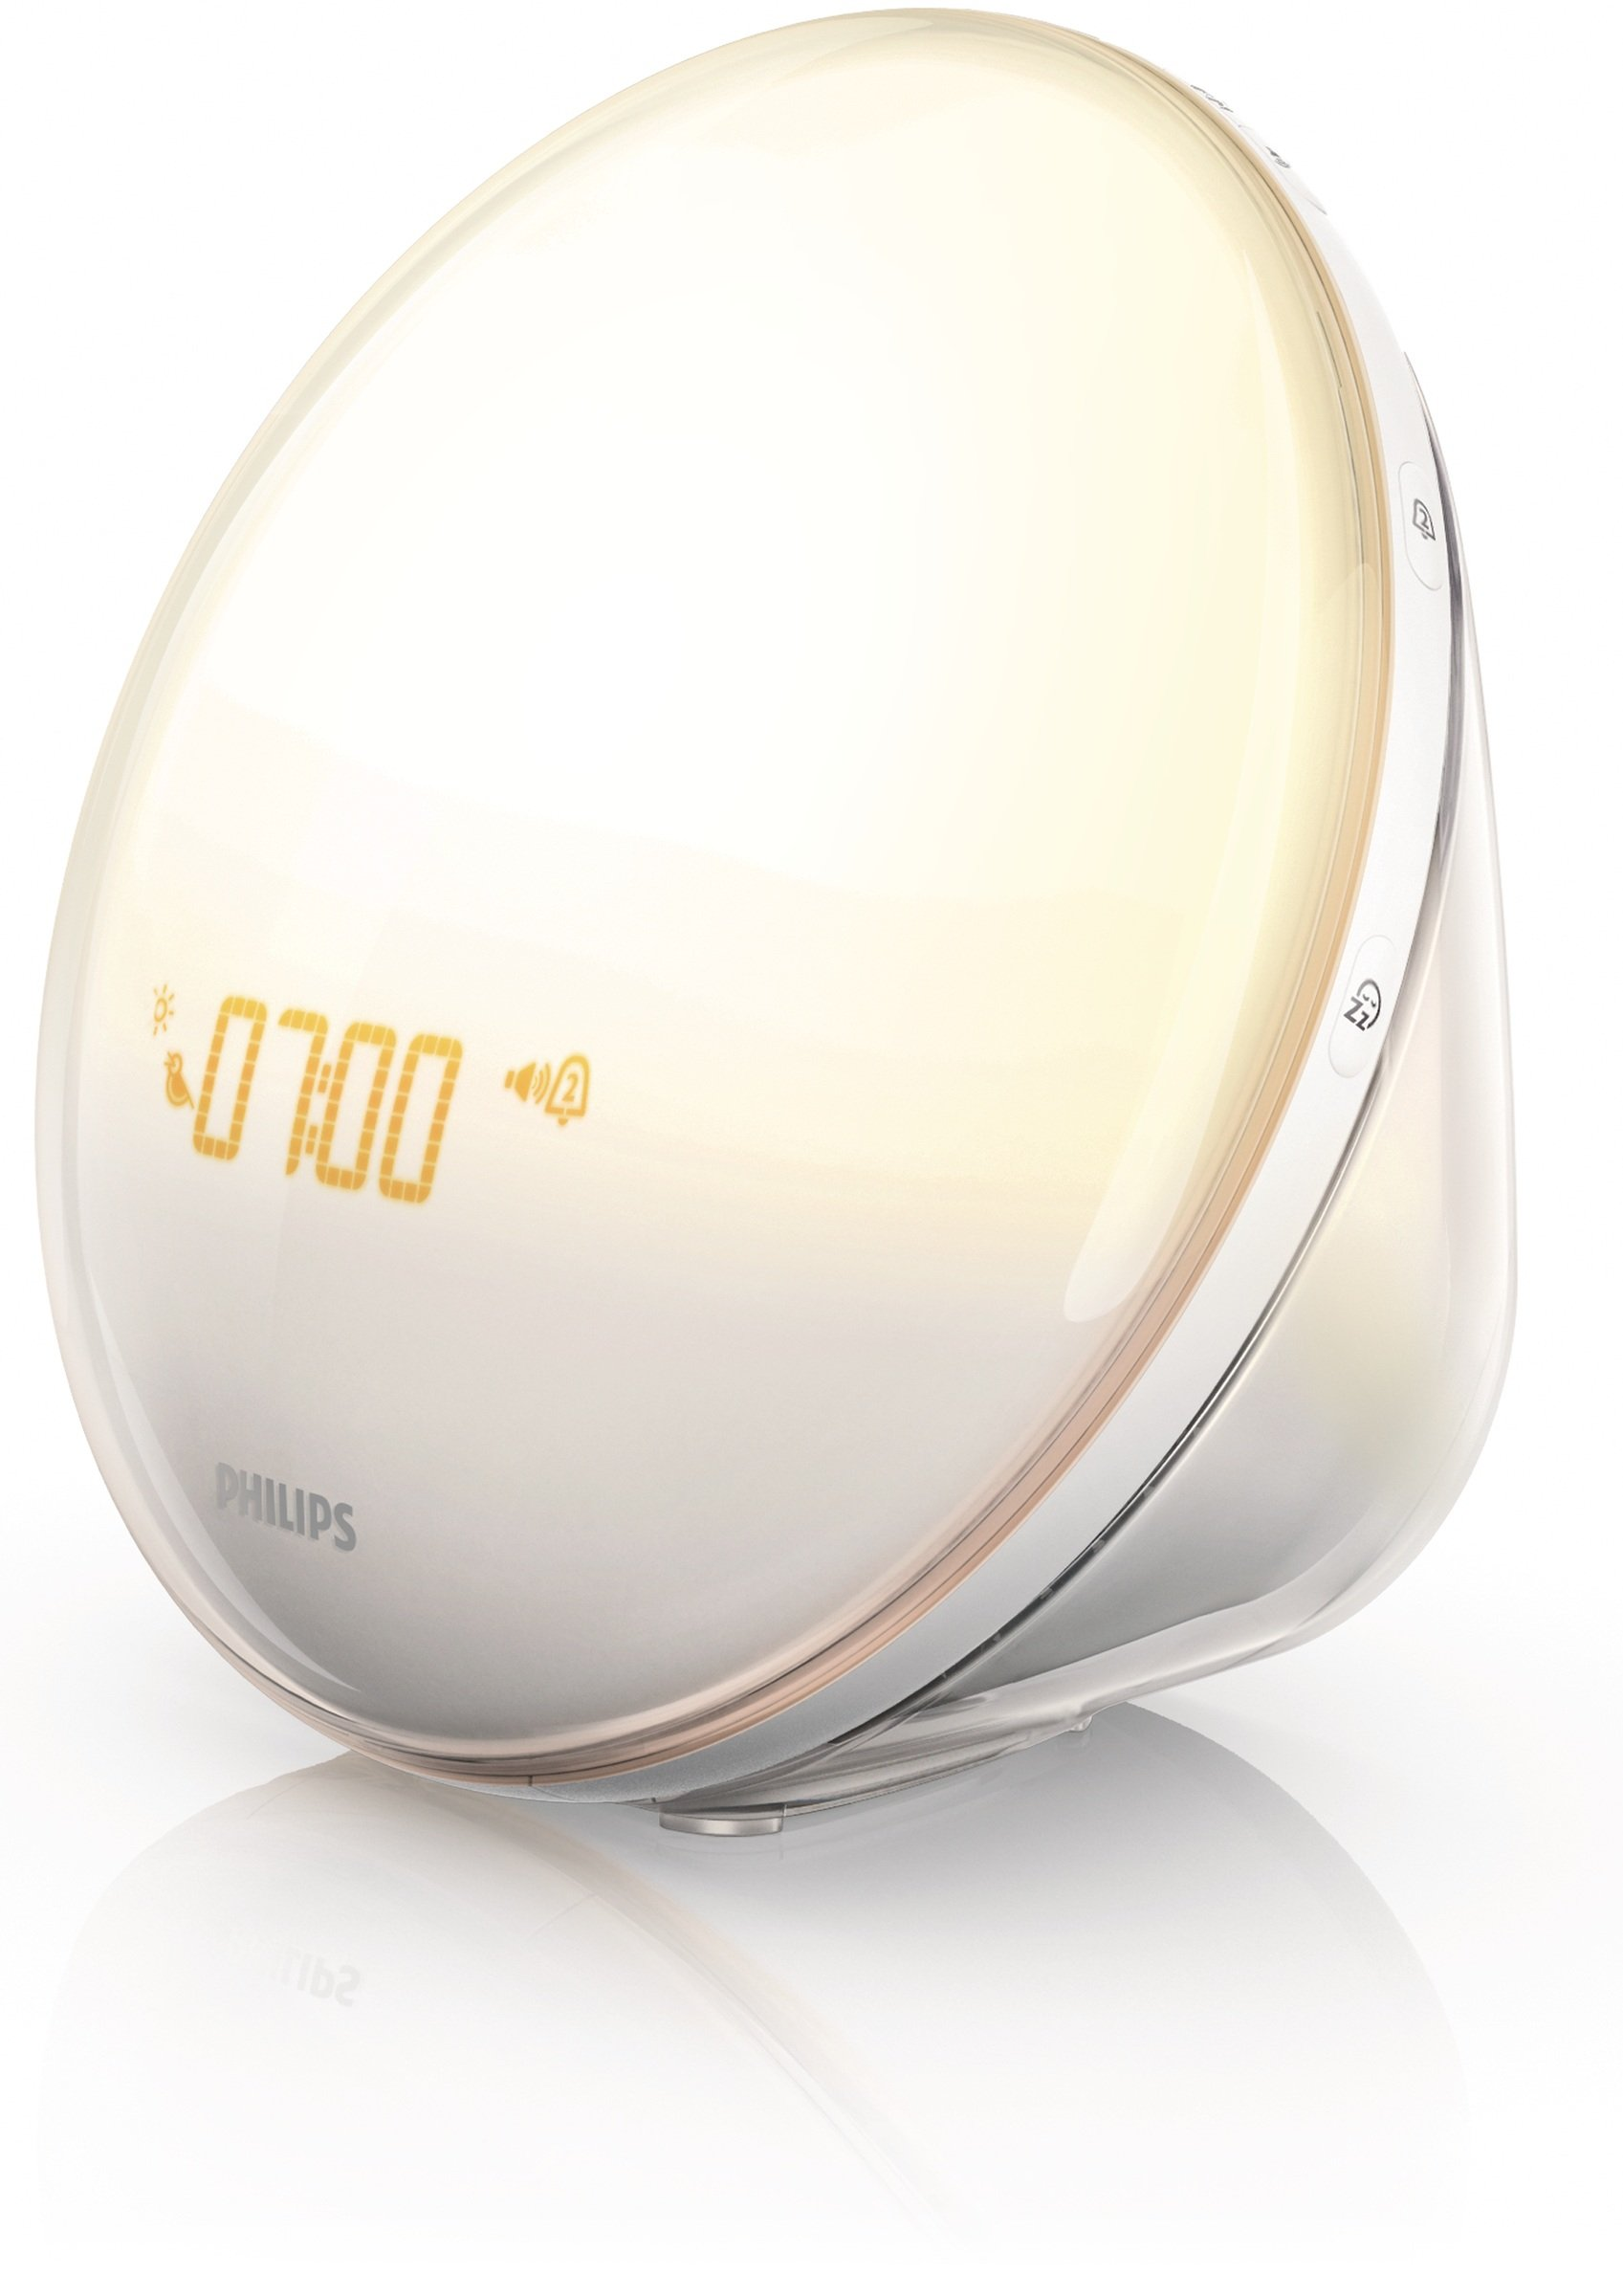 Philips Wake-Up Light Alarm Clock with Colored Sunrise Simulation and Sunset Fading Night Light, White (HF3520) by Philips